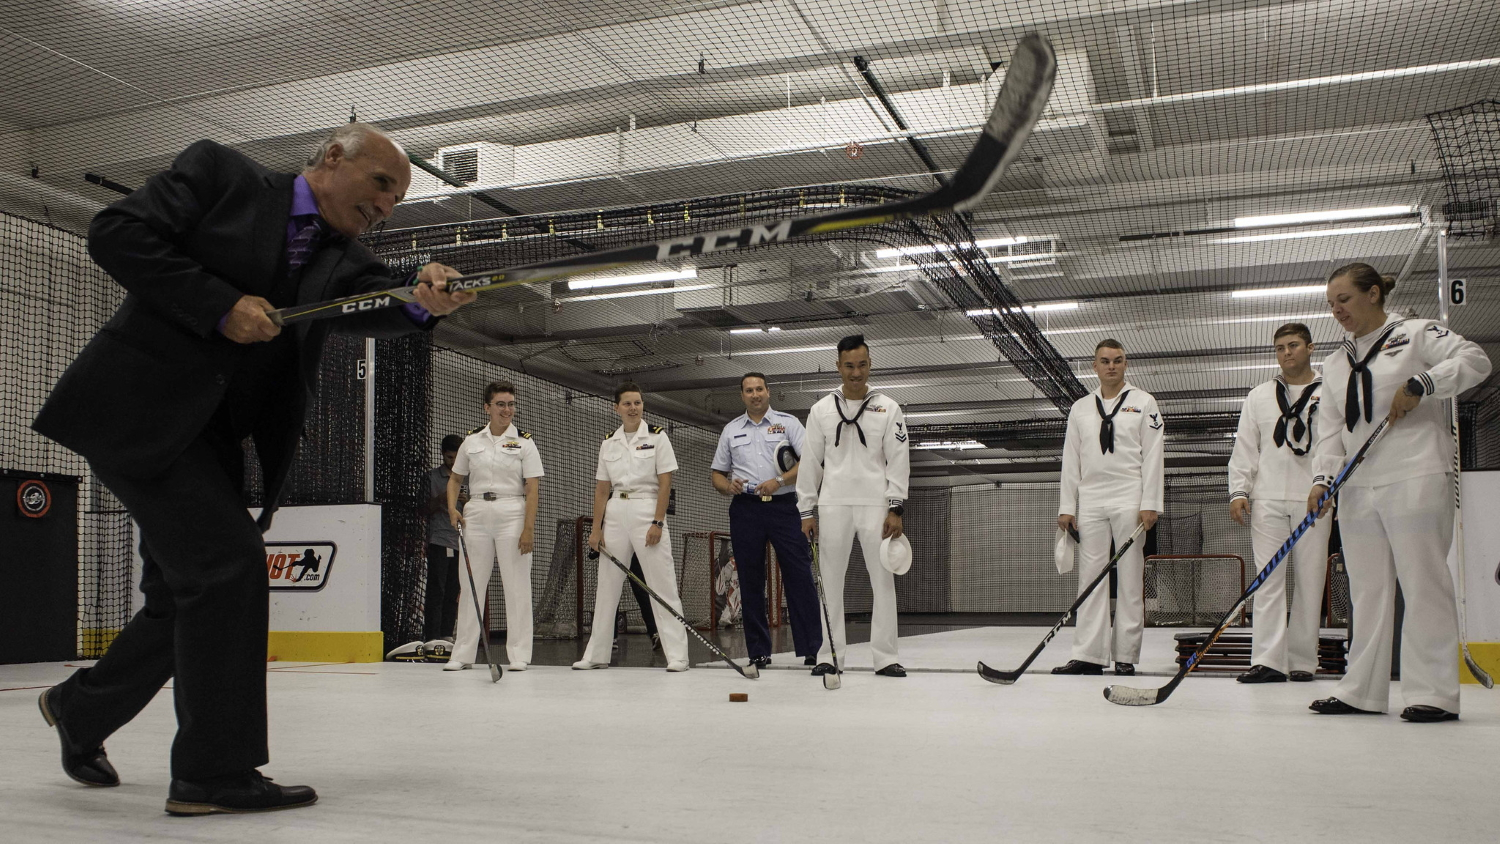 Daryl Evans, LA Kings alumni and commentator, teaches sailors assigned to the guided missile-destroyer USS Spruance (DDG 111) how to shoot a hockey puck Aug. 29, 2019, while touring Toyota Sports Center during Los Angeles Fleet Week. (Mass Communication Specialist 3rd Class Hector Carrera/Navy)